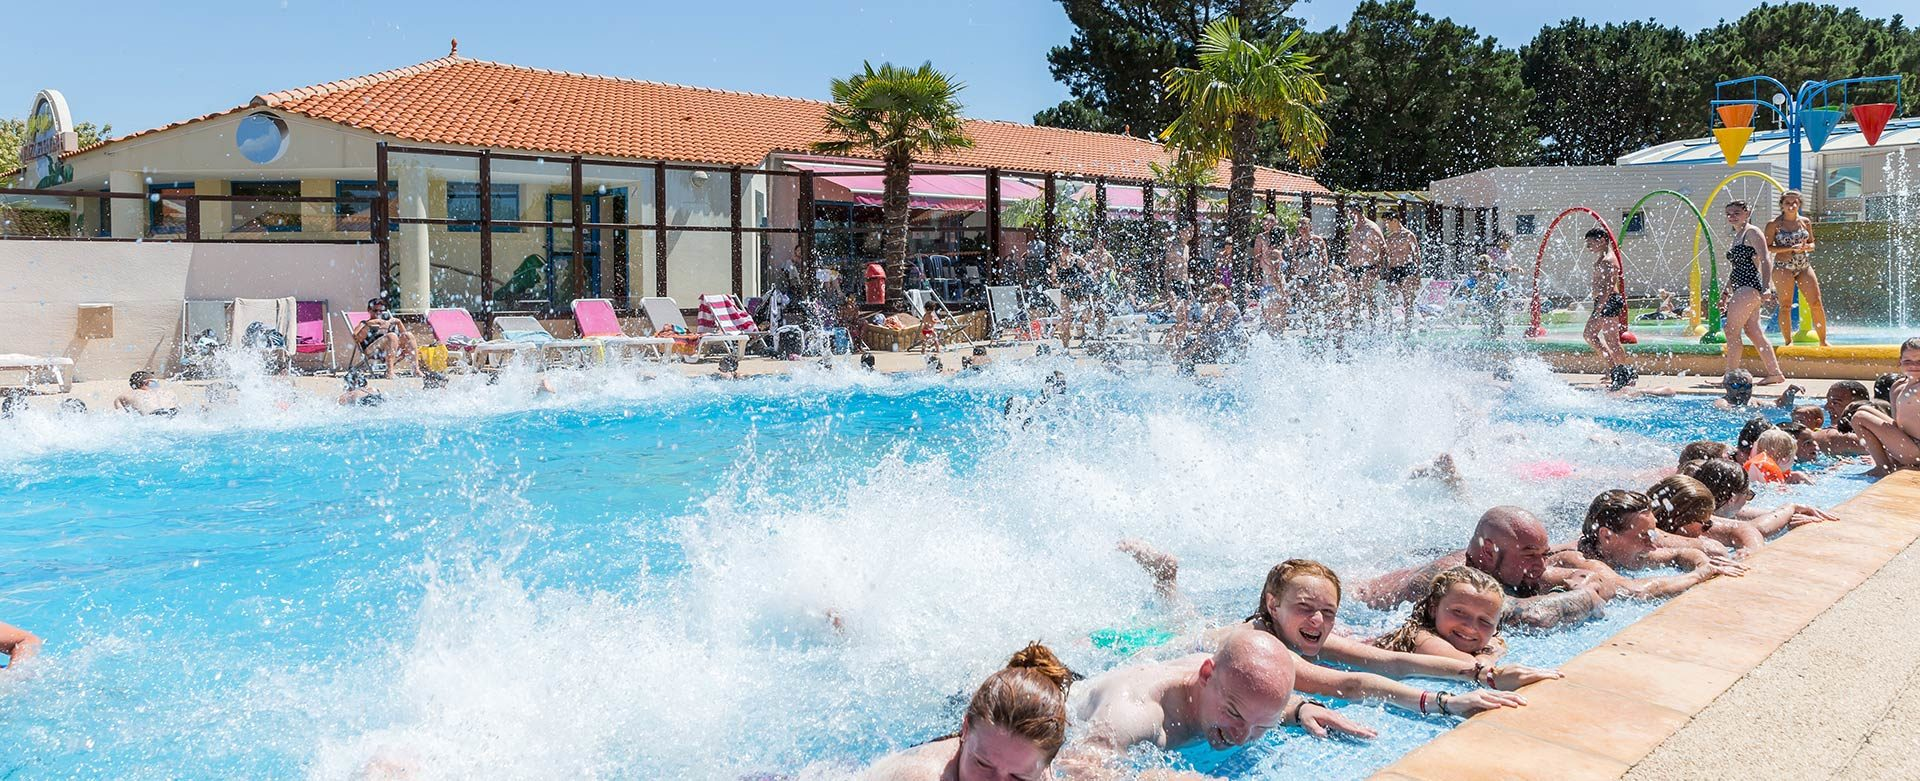 Camping yelloh village vendee